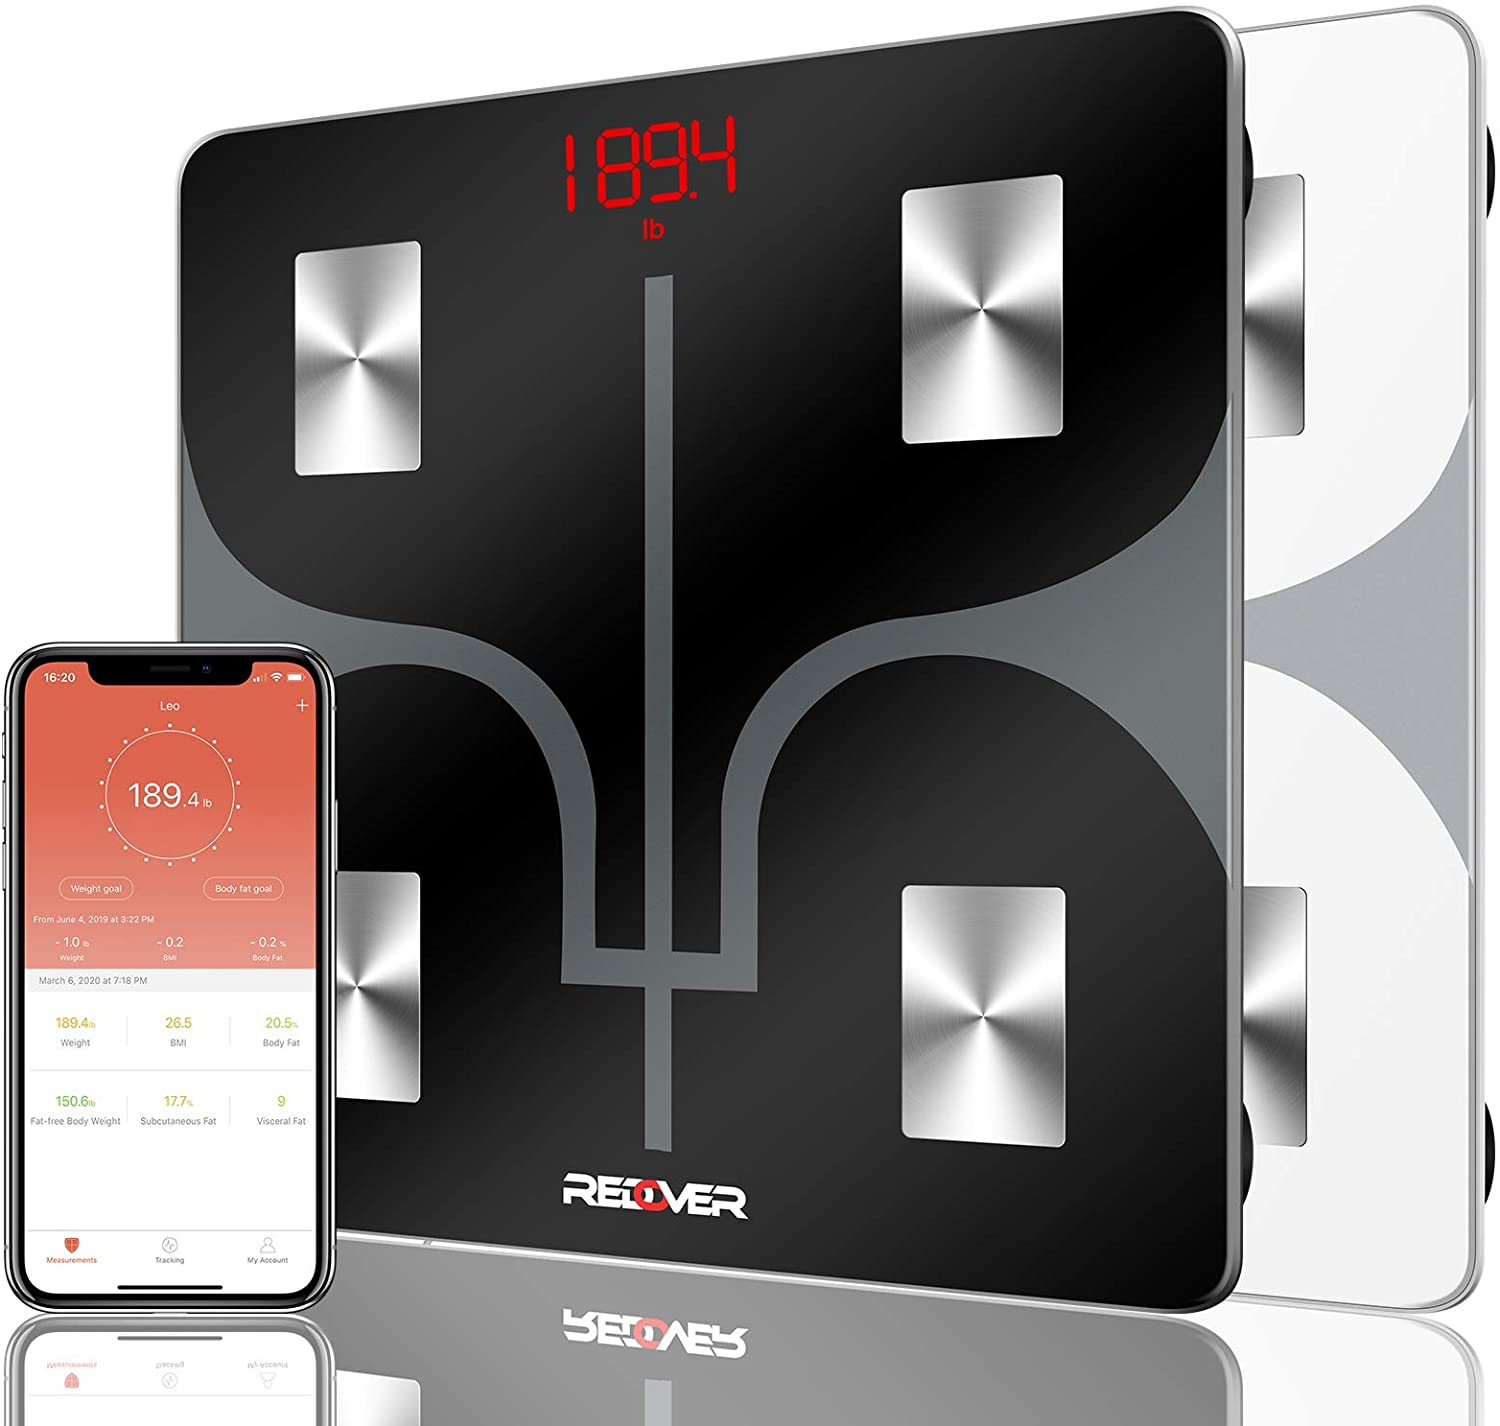 REDOVER-Bluetooth Body Fat Scale with Smartphone App, Smart Wireless Digital Bathroom Scale, Body Composition Analyzer for Body Weight, Body Fat, Muscle Mass, BMI, BMR and More, 400lb (Black)